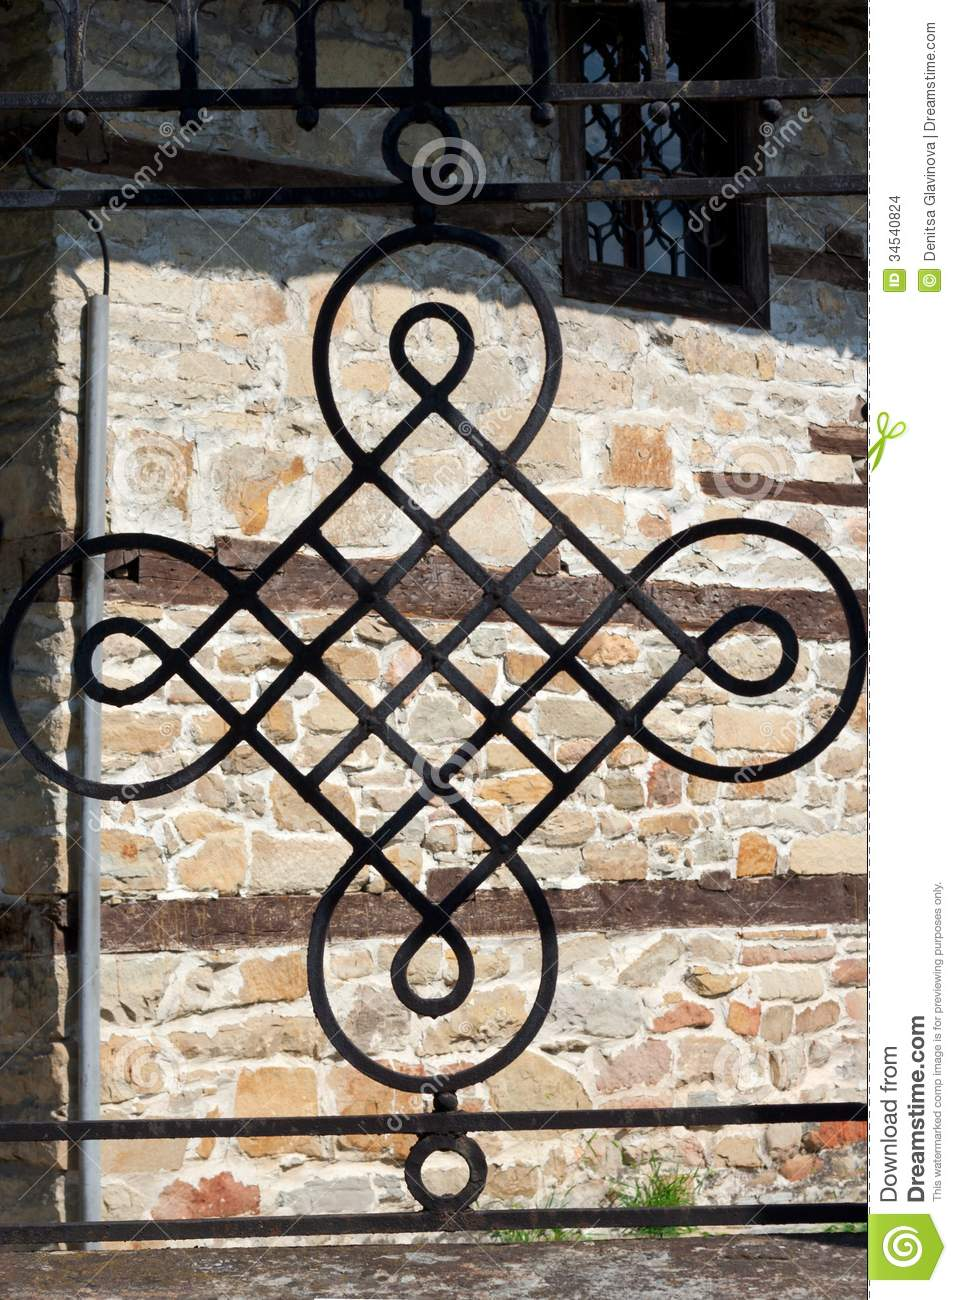 Wrought iron ornament stock photo image of background